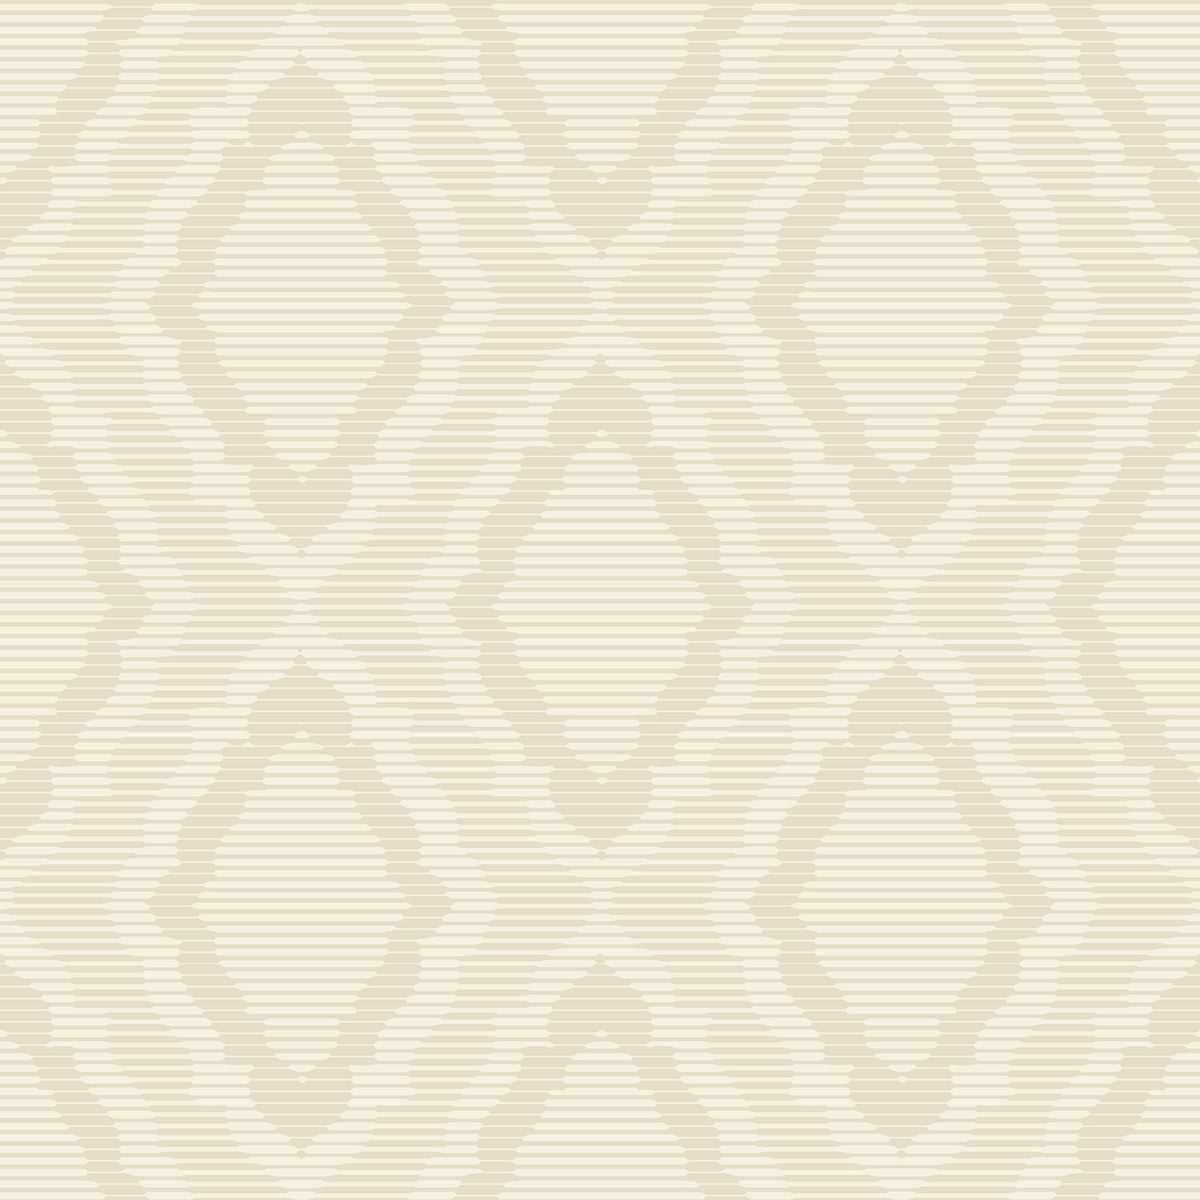 Candice Olson Decadence Amulet Wallpaper in Offwhite